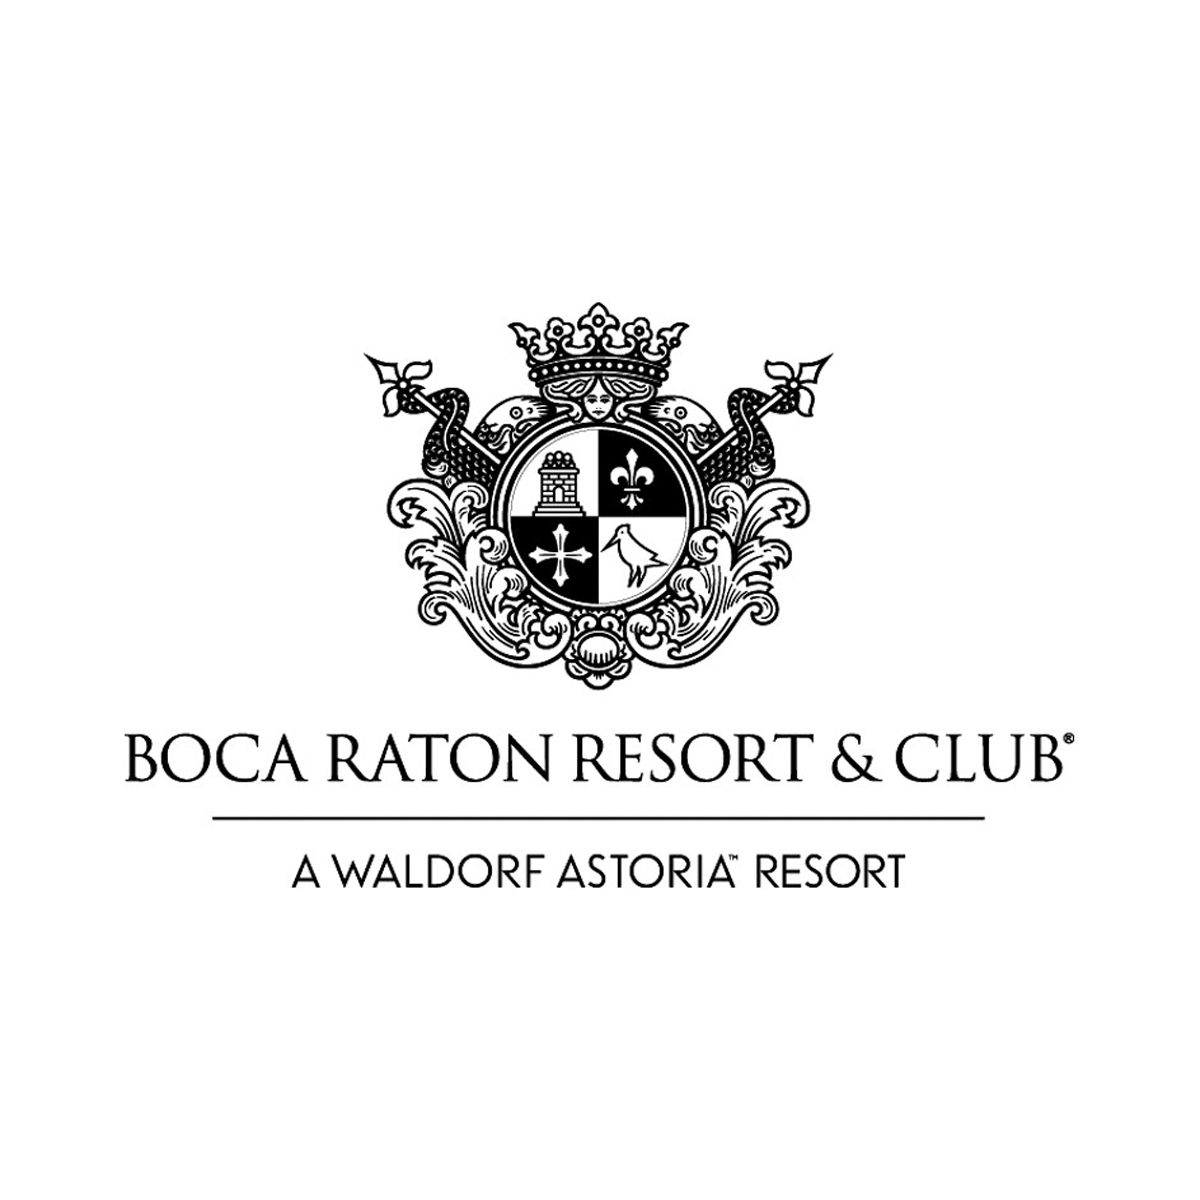 Established in 1926 by visionary architect Addison Mizner, the landmark Boca Raton Resort & Club, a Waldorf Astoria Resort, is nestled on 356 acres in Southern Palm Beach County. The Resort features five unique styles of guest rooms and suites, including the recently redesigned The Yacht Club, South Florida's most luxurious boutique waterfront hotel overlooking the Intracoastal Waterway, Forbes Four Star Boca Beach Club overlooking the Atlantic Ocean, the Cloister with grand estate views, the historic pink Tower and the Bungalows for extended stays. For more information, please visit visit  www.BocaResort.com .